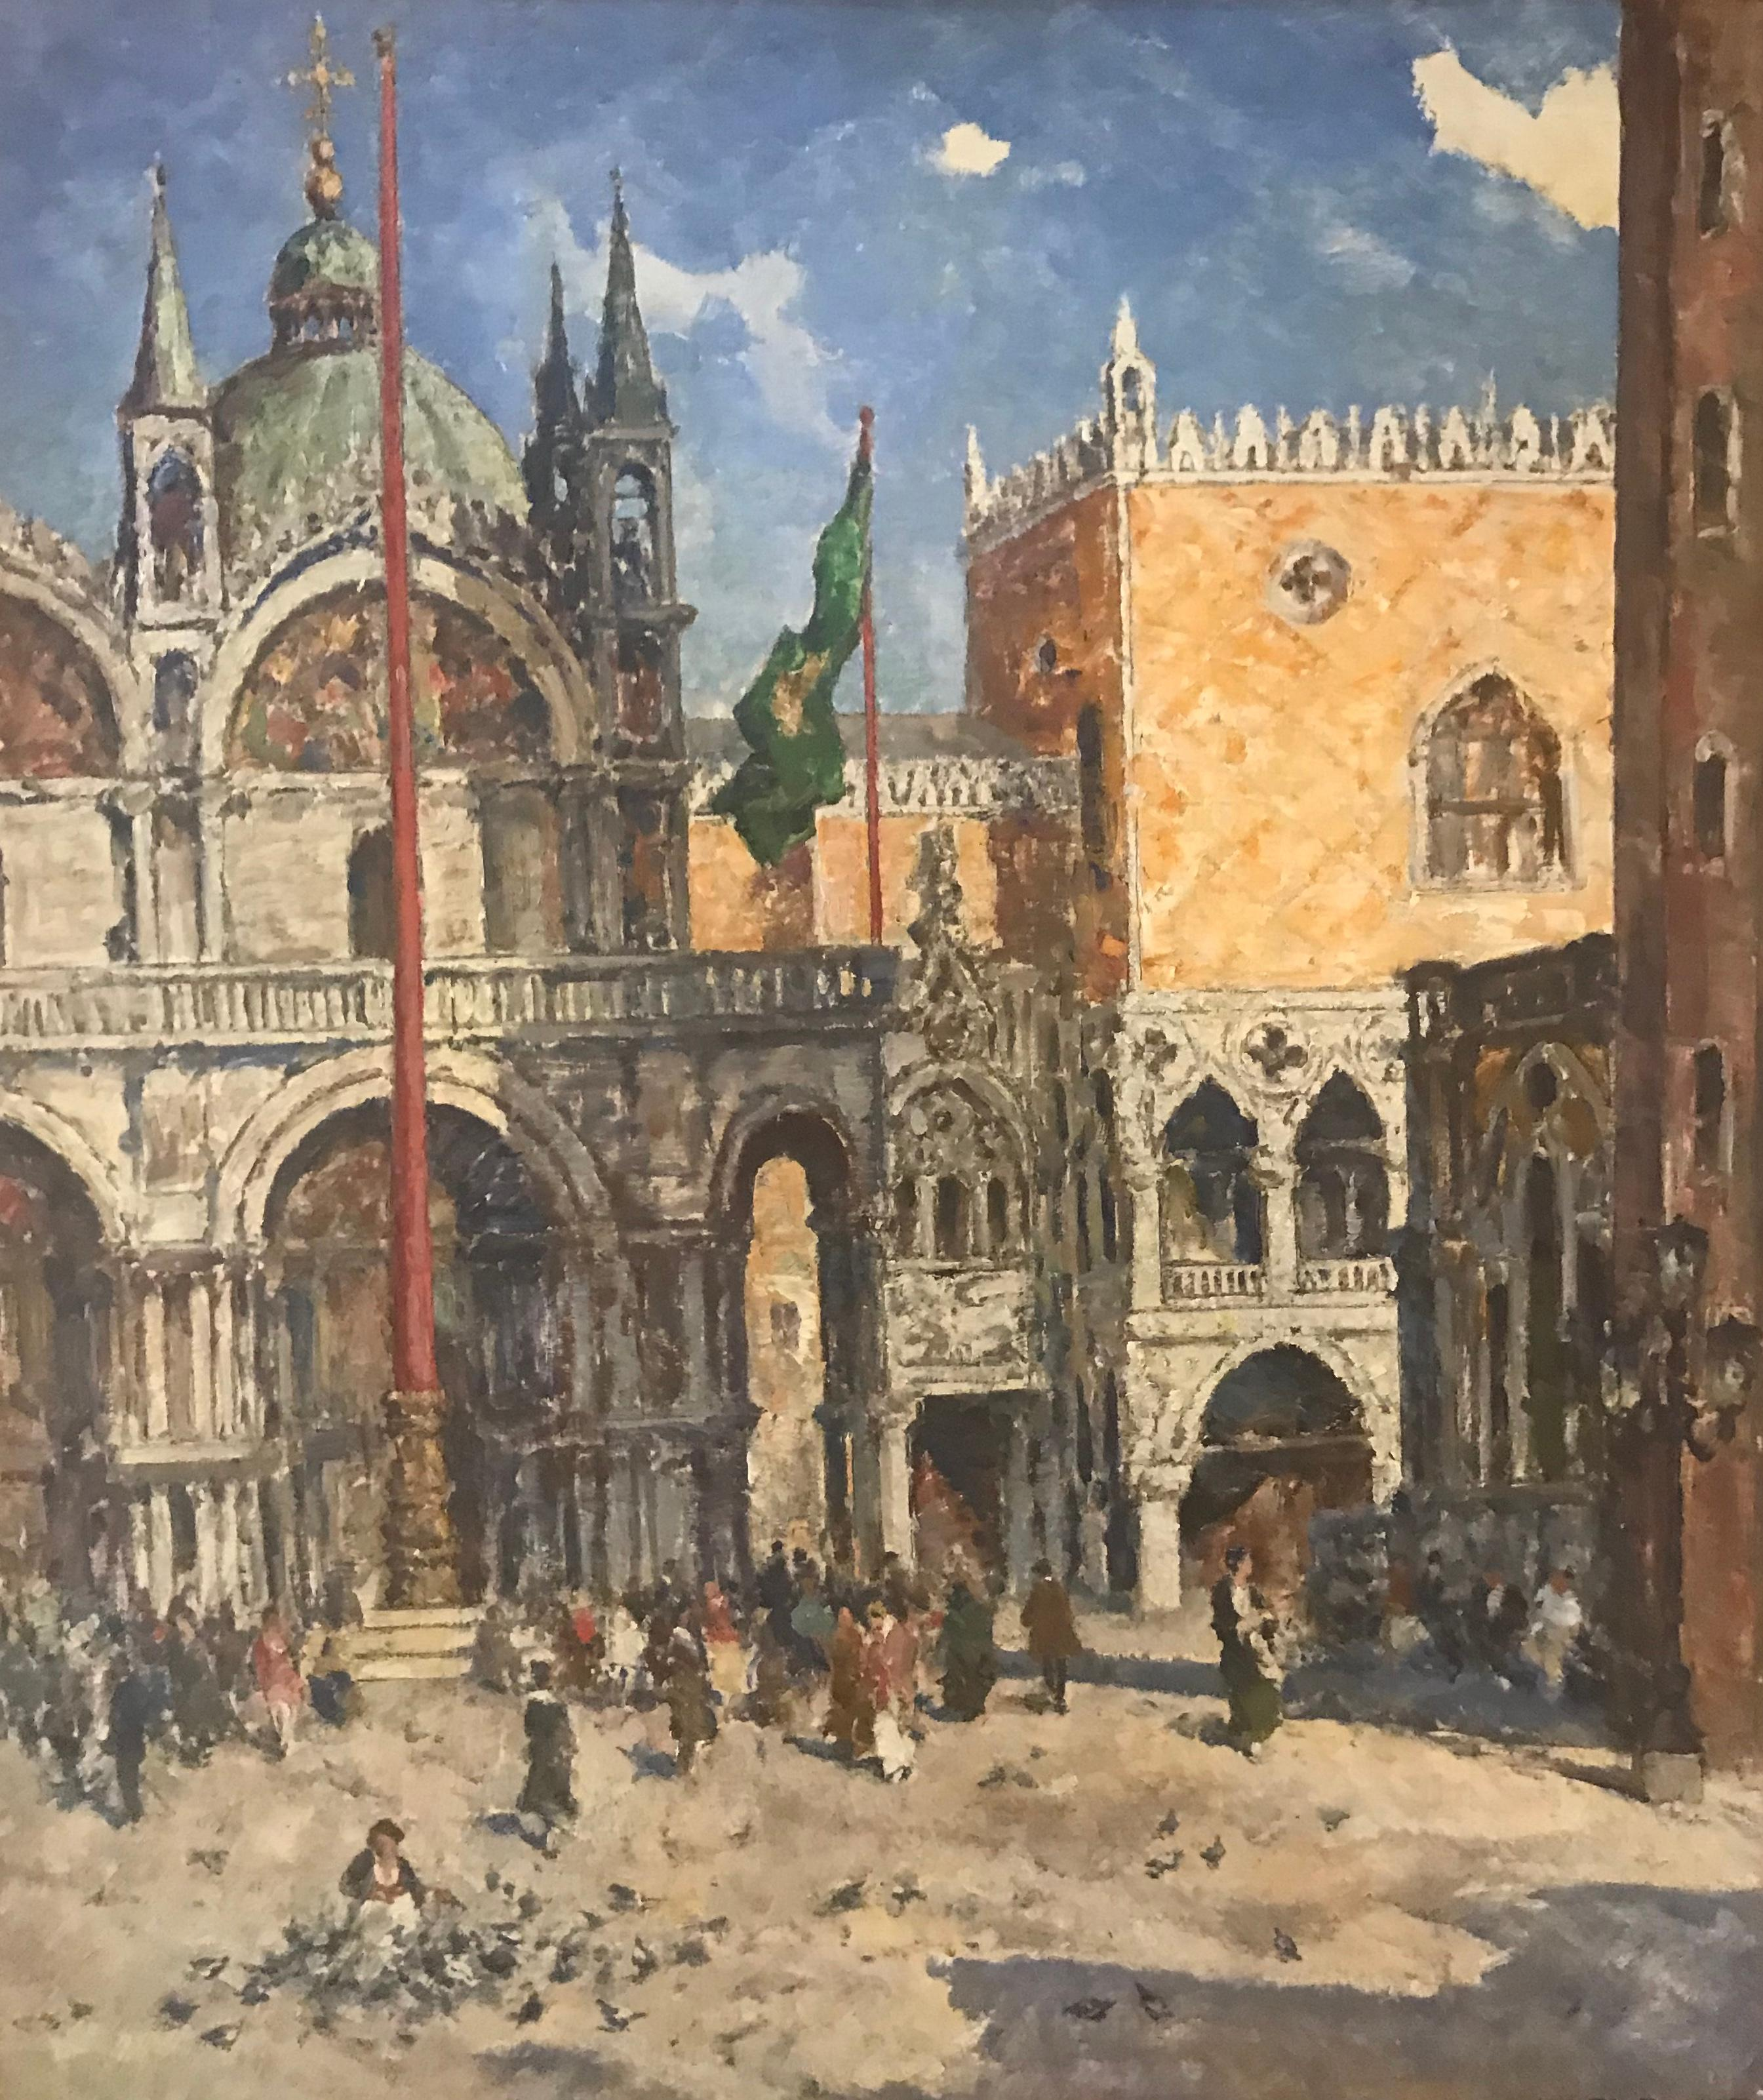 'St Marks Square' Venice painting of architecture & figures. Venetian City scene